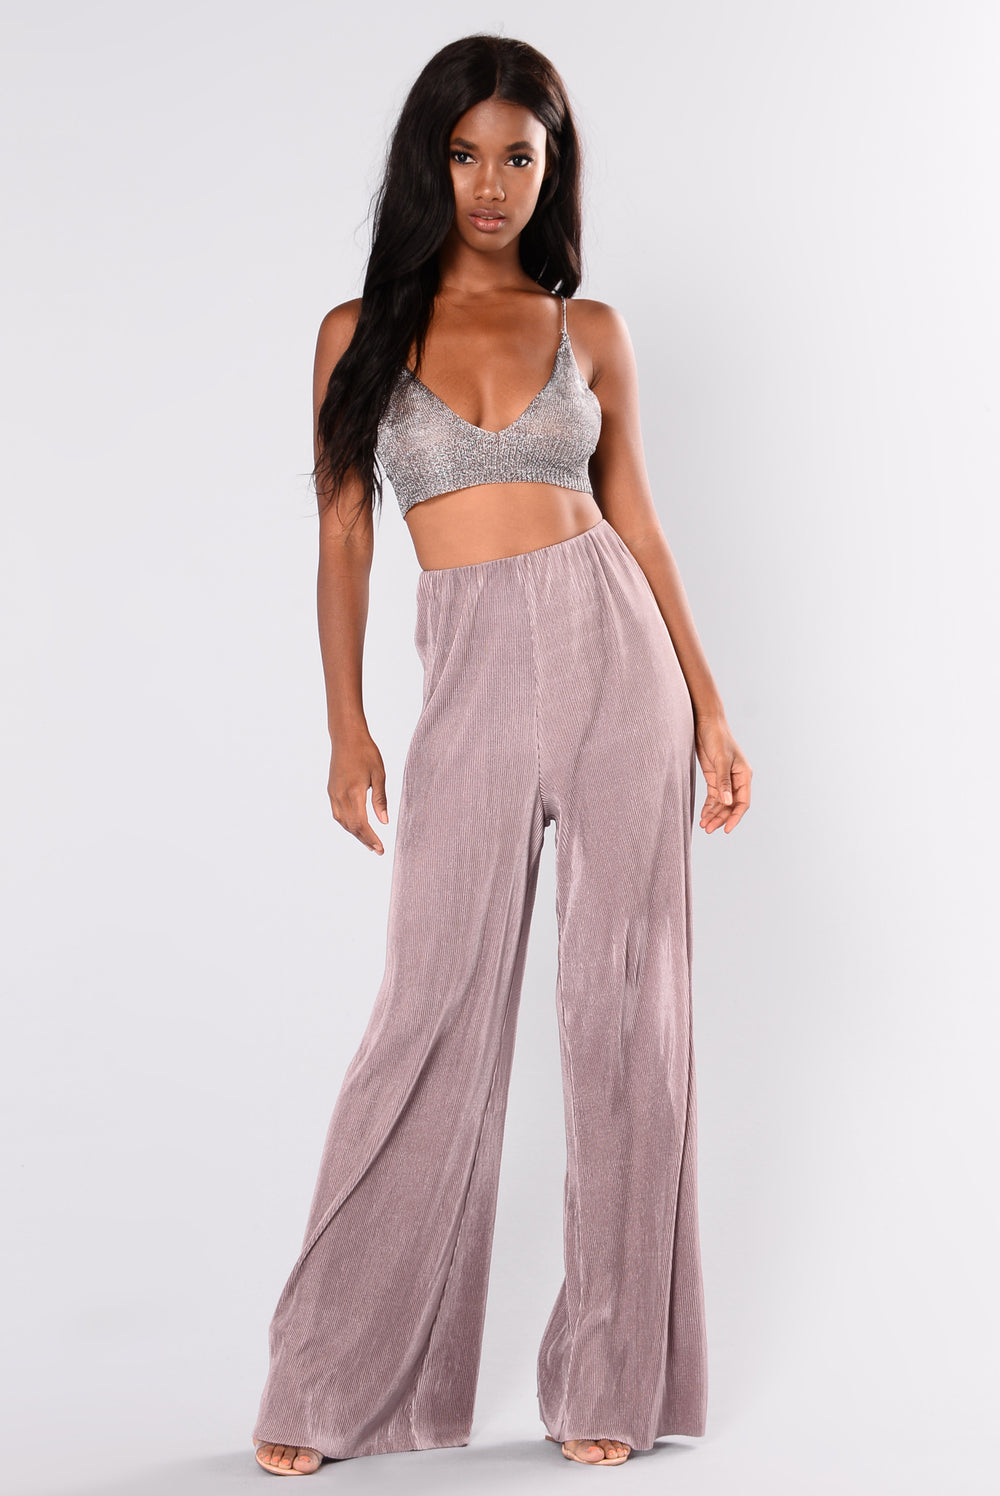 Layla Satin Pleated Pants - Dusty Lavender